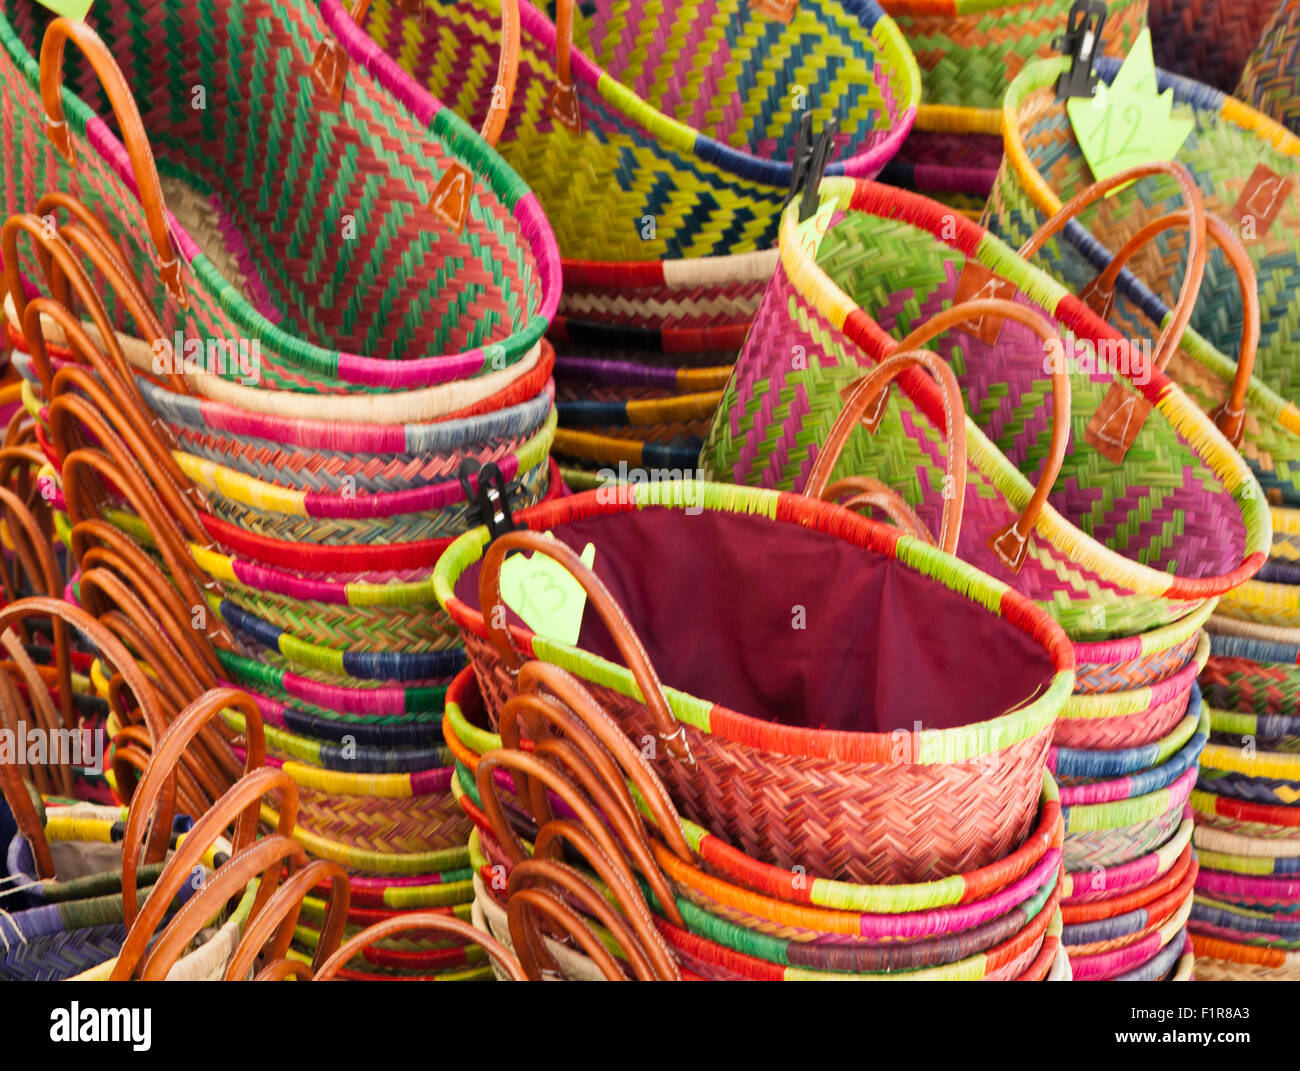 Colourful Baskets in the market, Tarn-et-Garonne,Midi-Pyrenees, southern France, 2015 - Stock Image